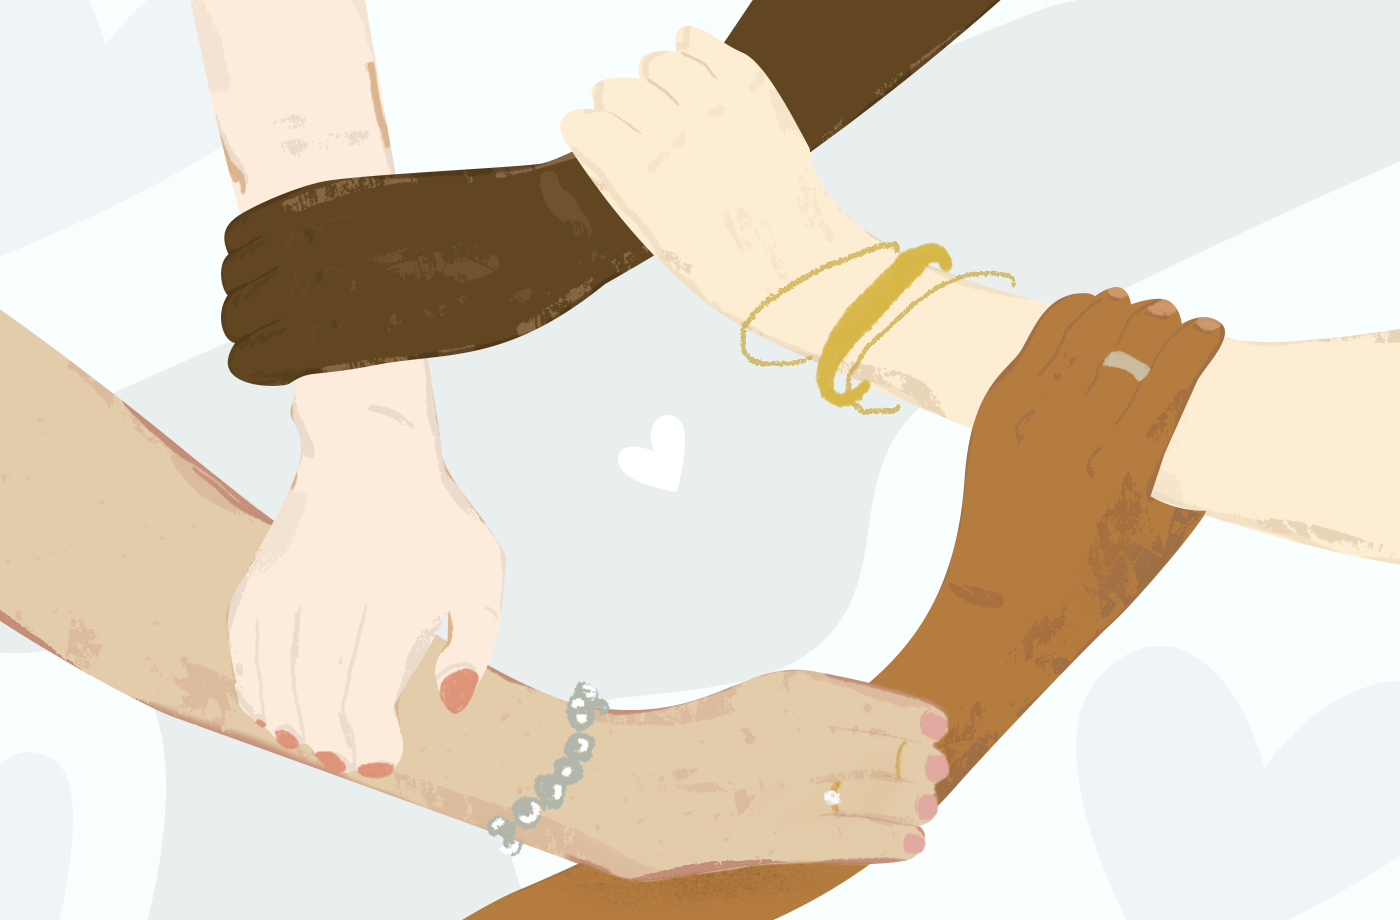 Illustration for a story on Gun Violence Survivors